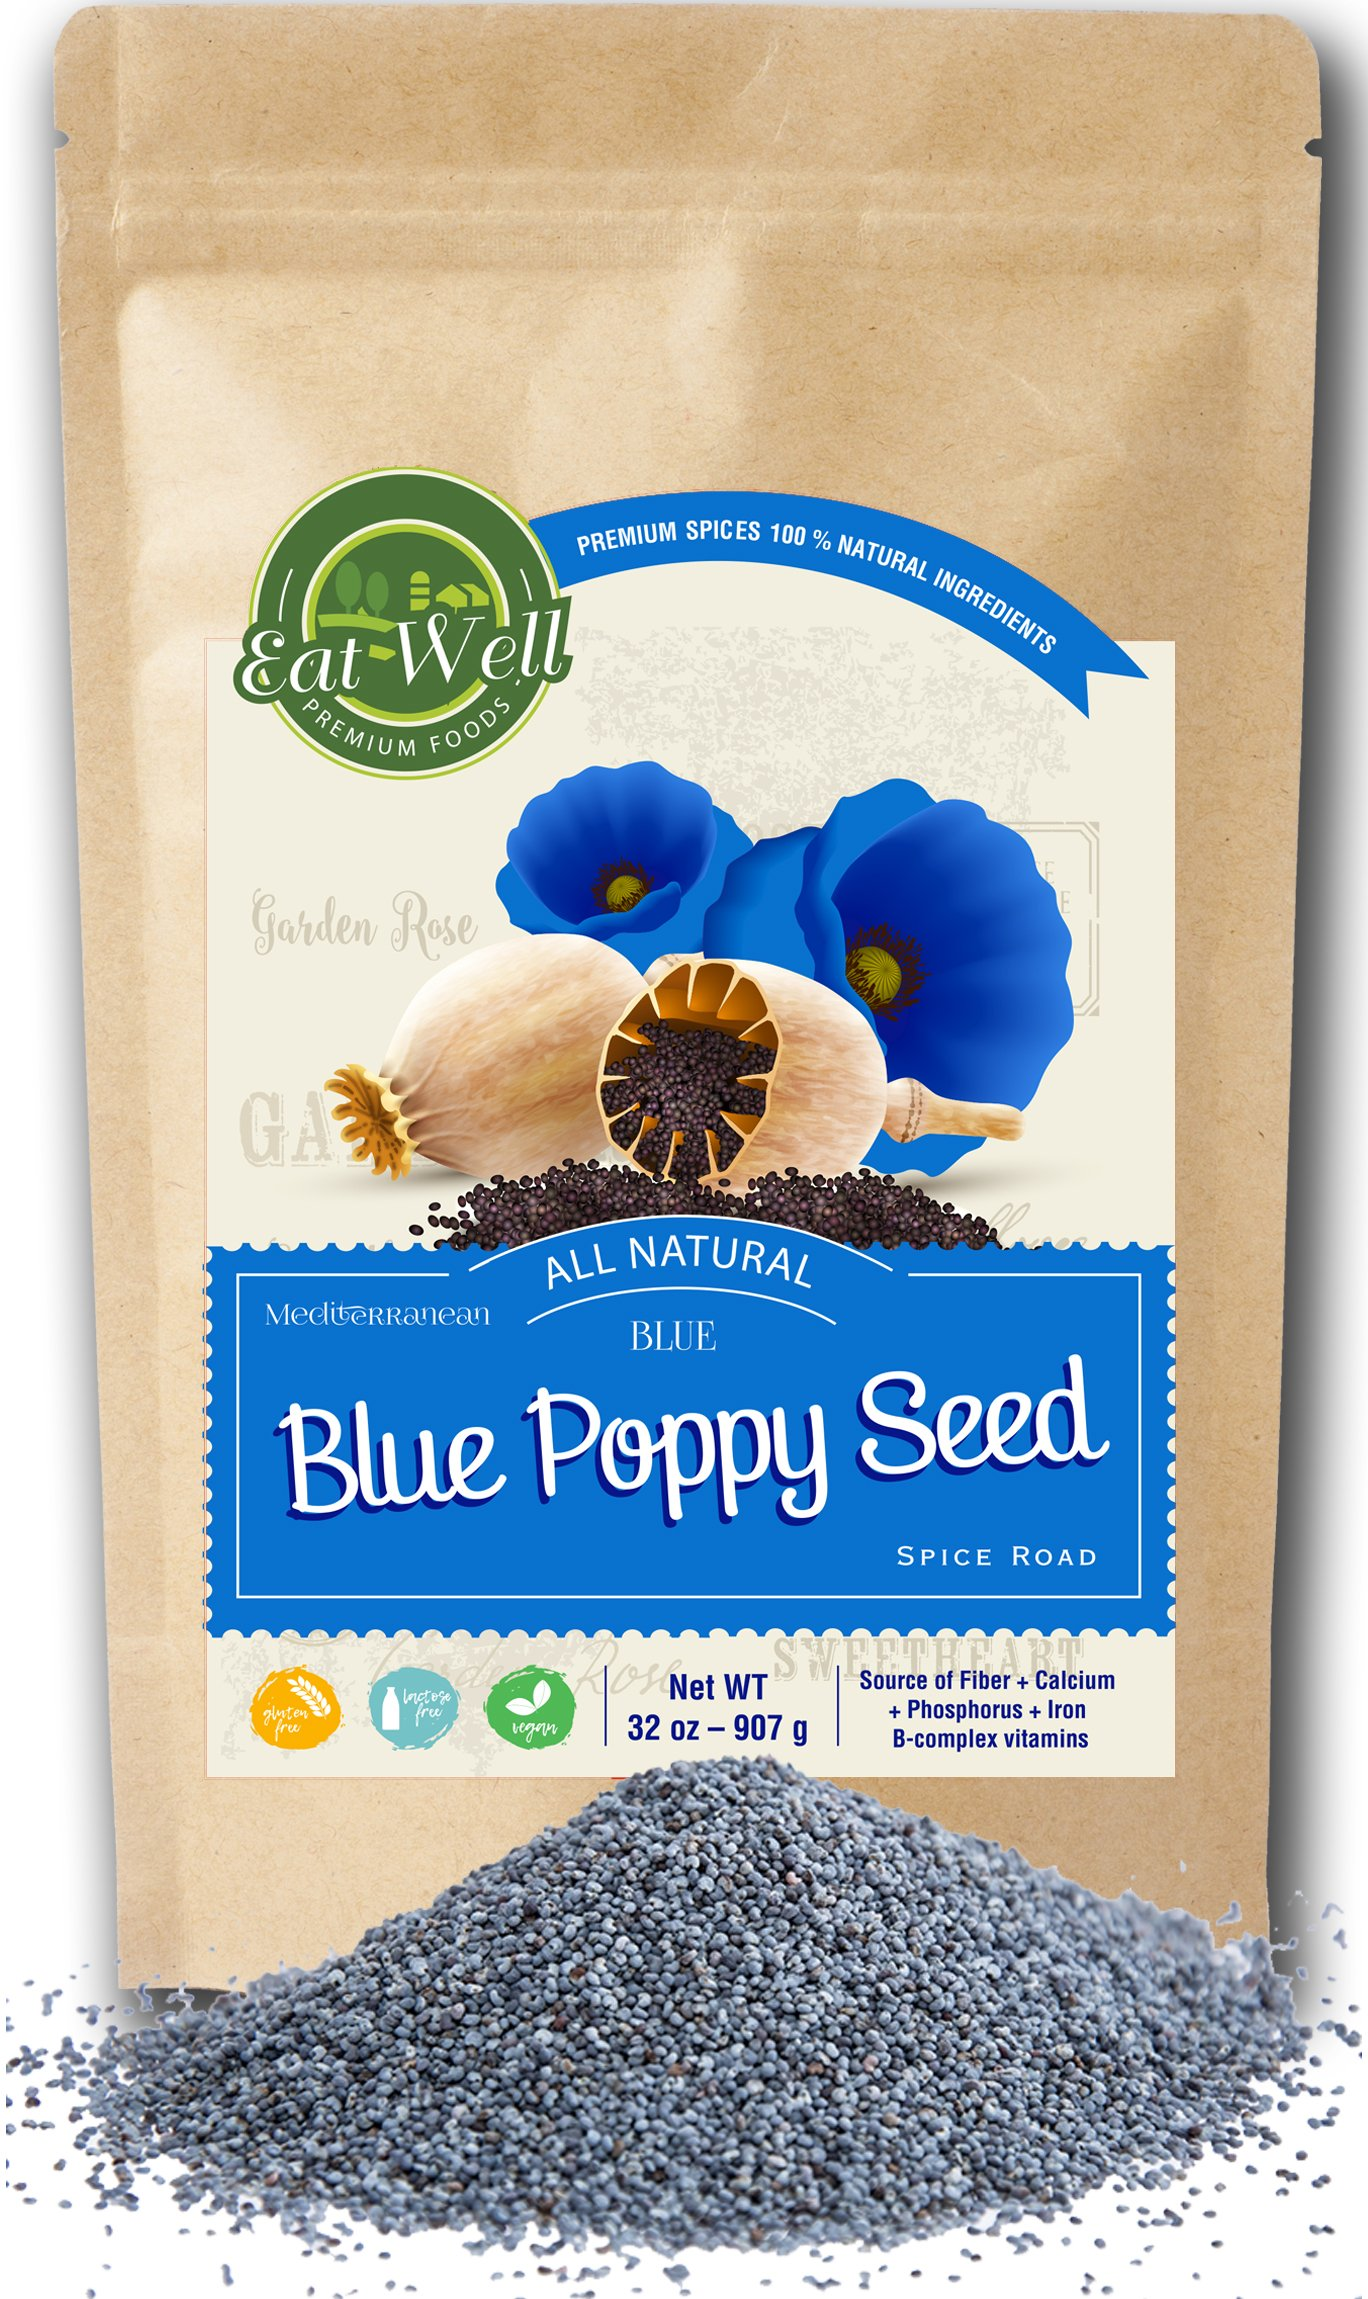 Whole Edible Poppy Seeds | Raw Poppy Seeds For Baking | 32oz (2 lbs) Reseable Bag, Bulk | Cake & Pastry Baking | 100% Natural | Herbs & Natural Spices | by Eat Well Premium Foods by EAT WELL PREMIUM FOODS